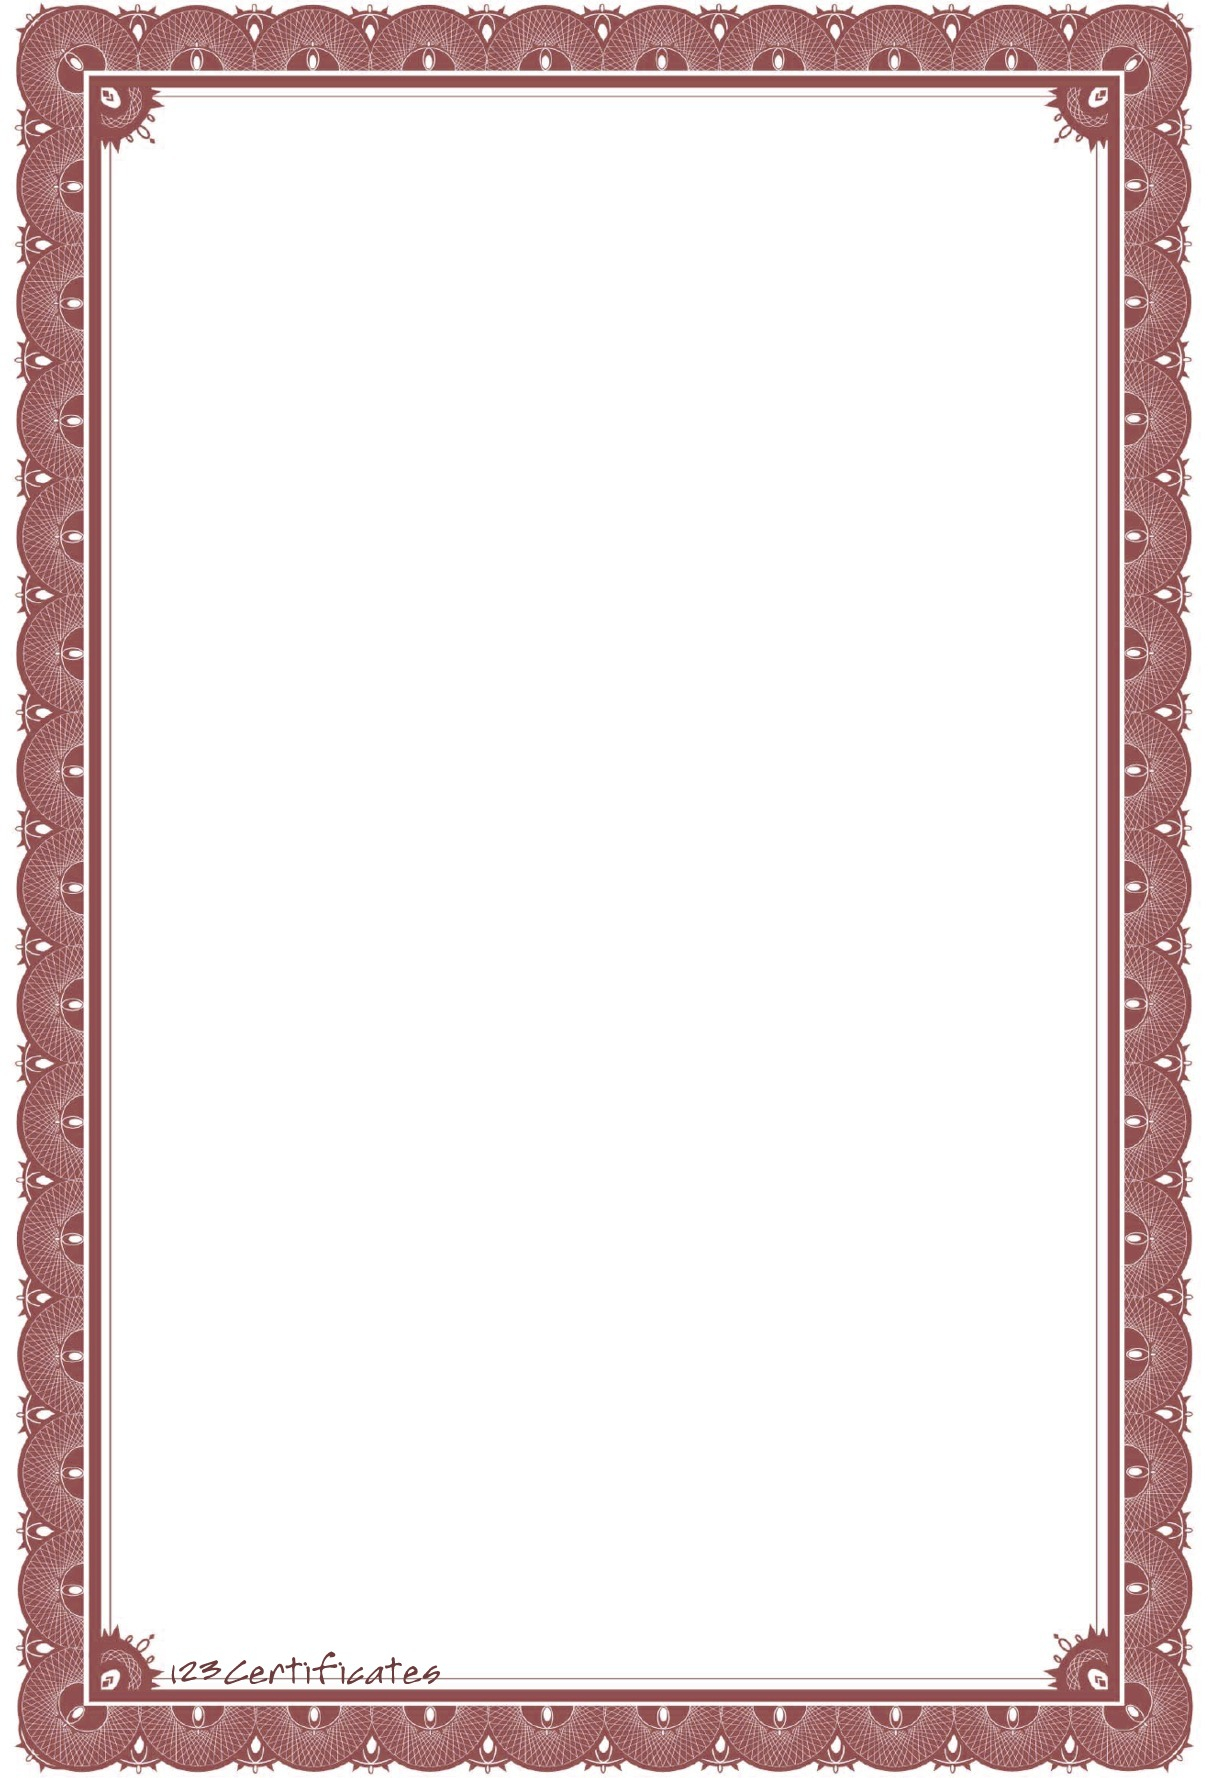 Great Certificate Border. Download Portrait Jpg File With Certificate Borders Free Download